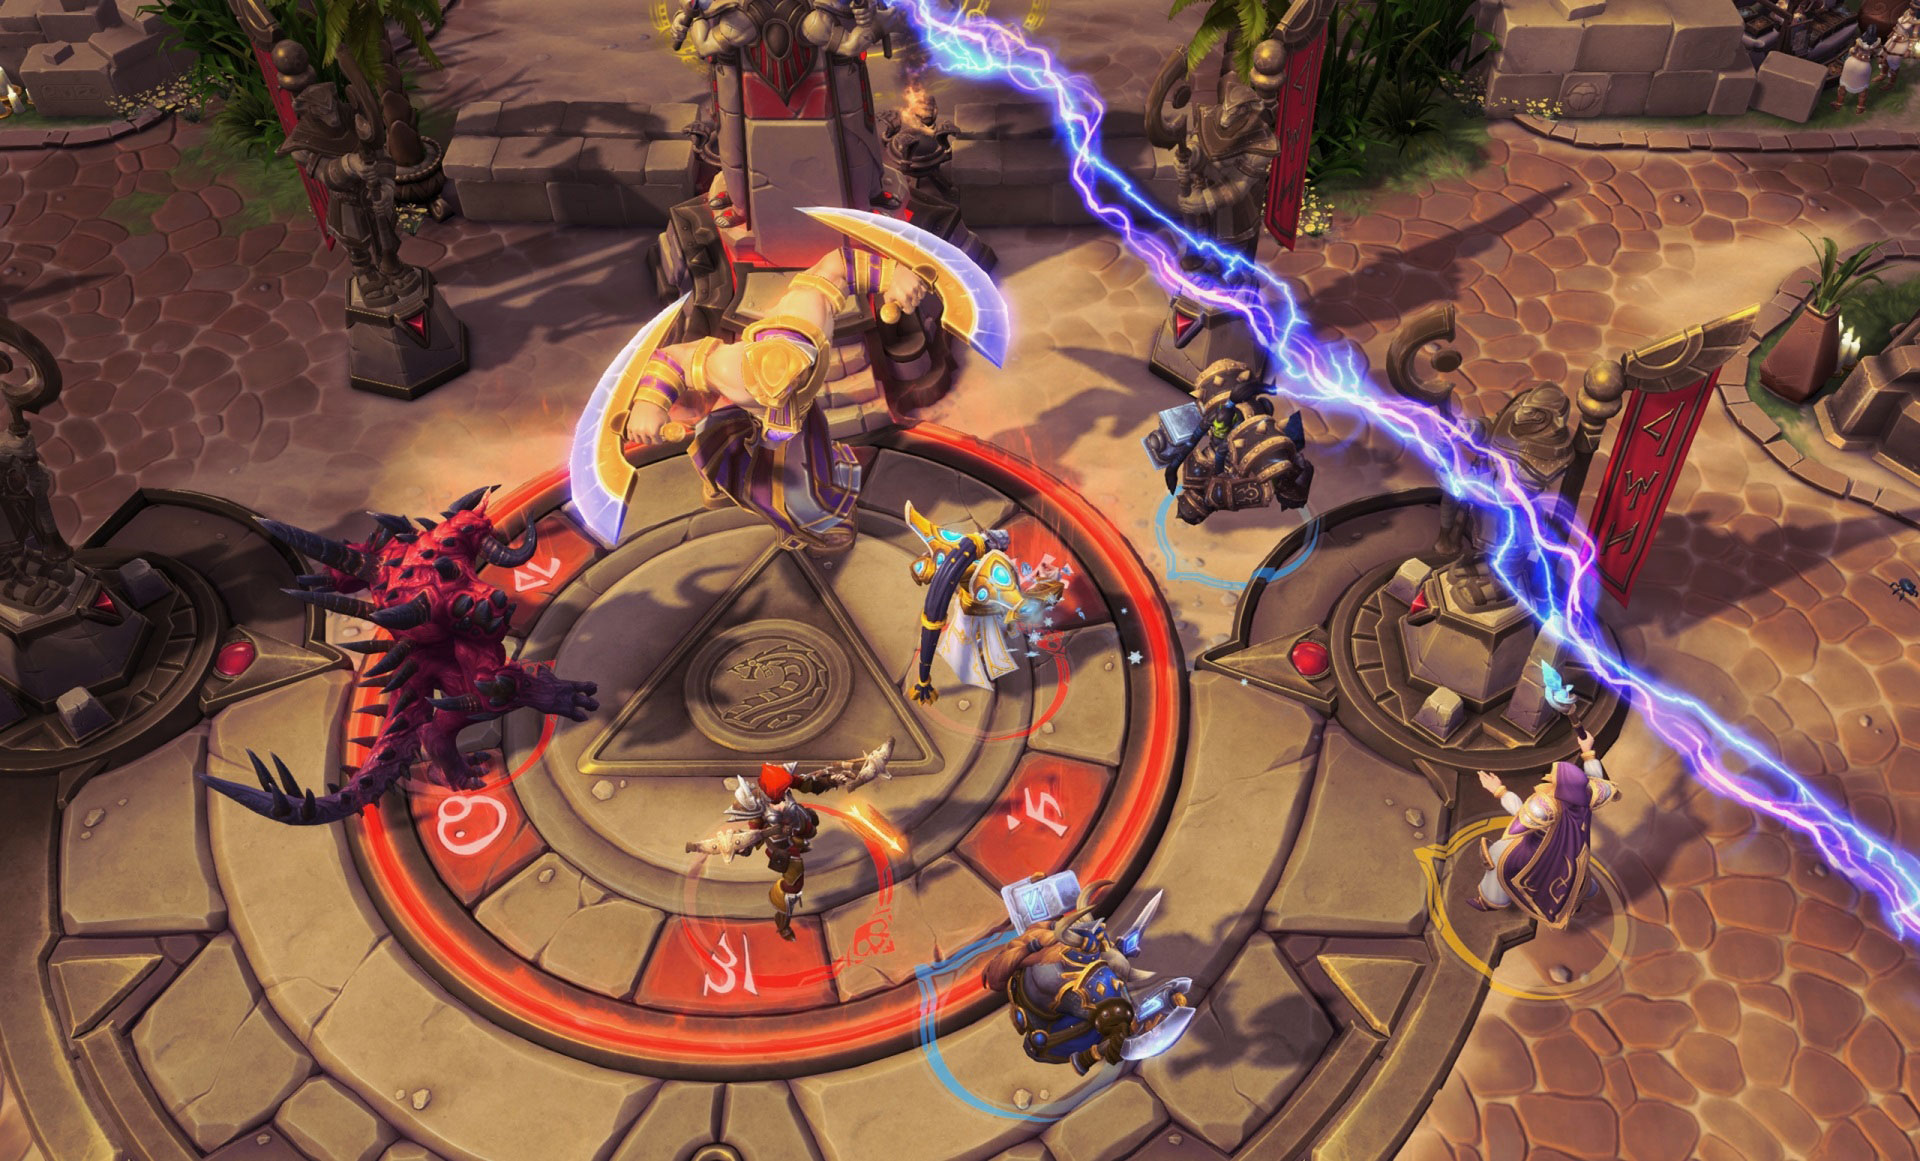 Screenshot de Jaina dans Heroes of the Storm.